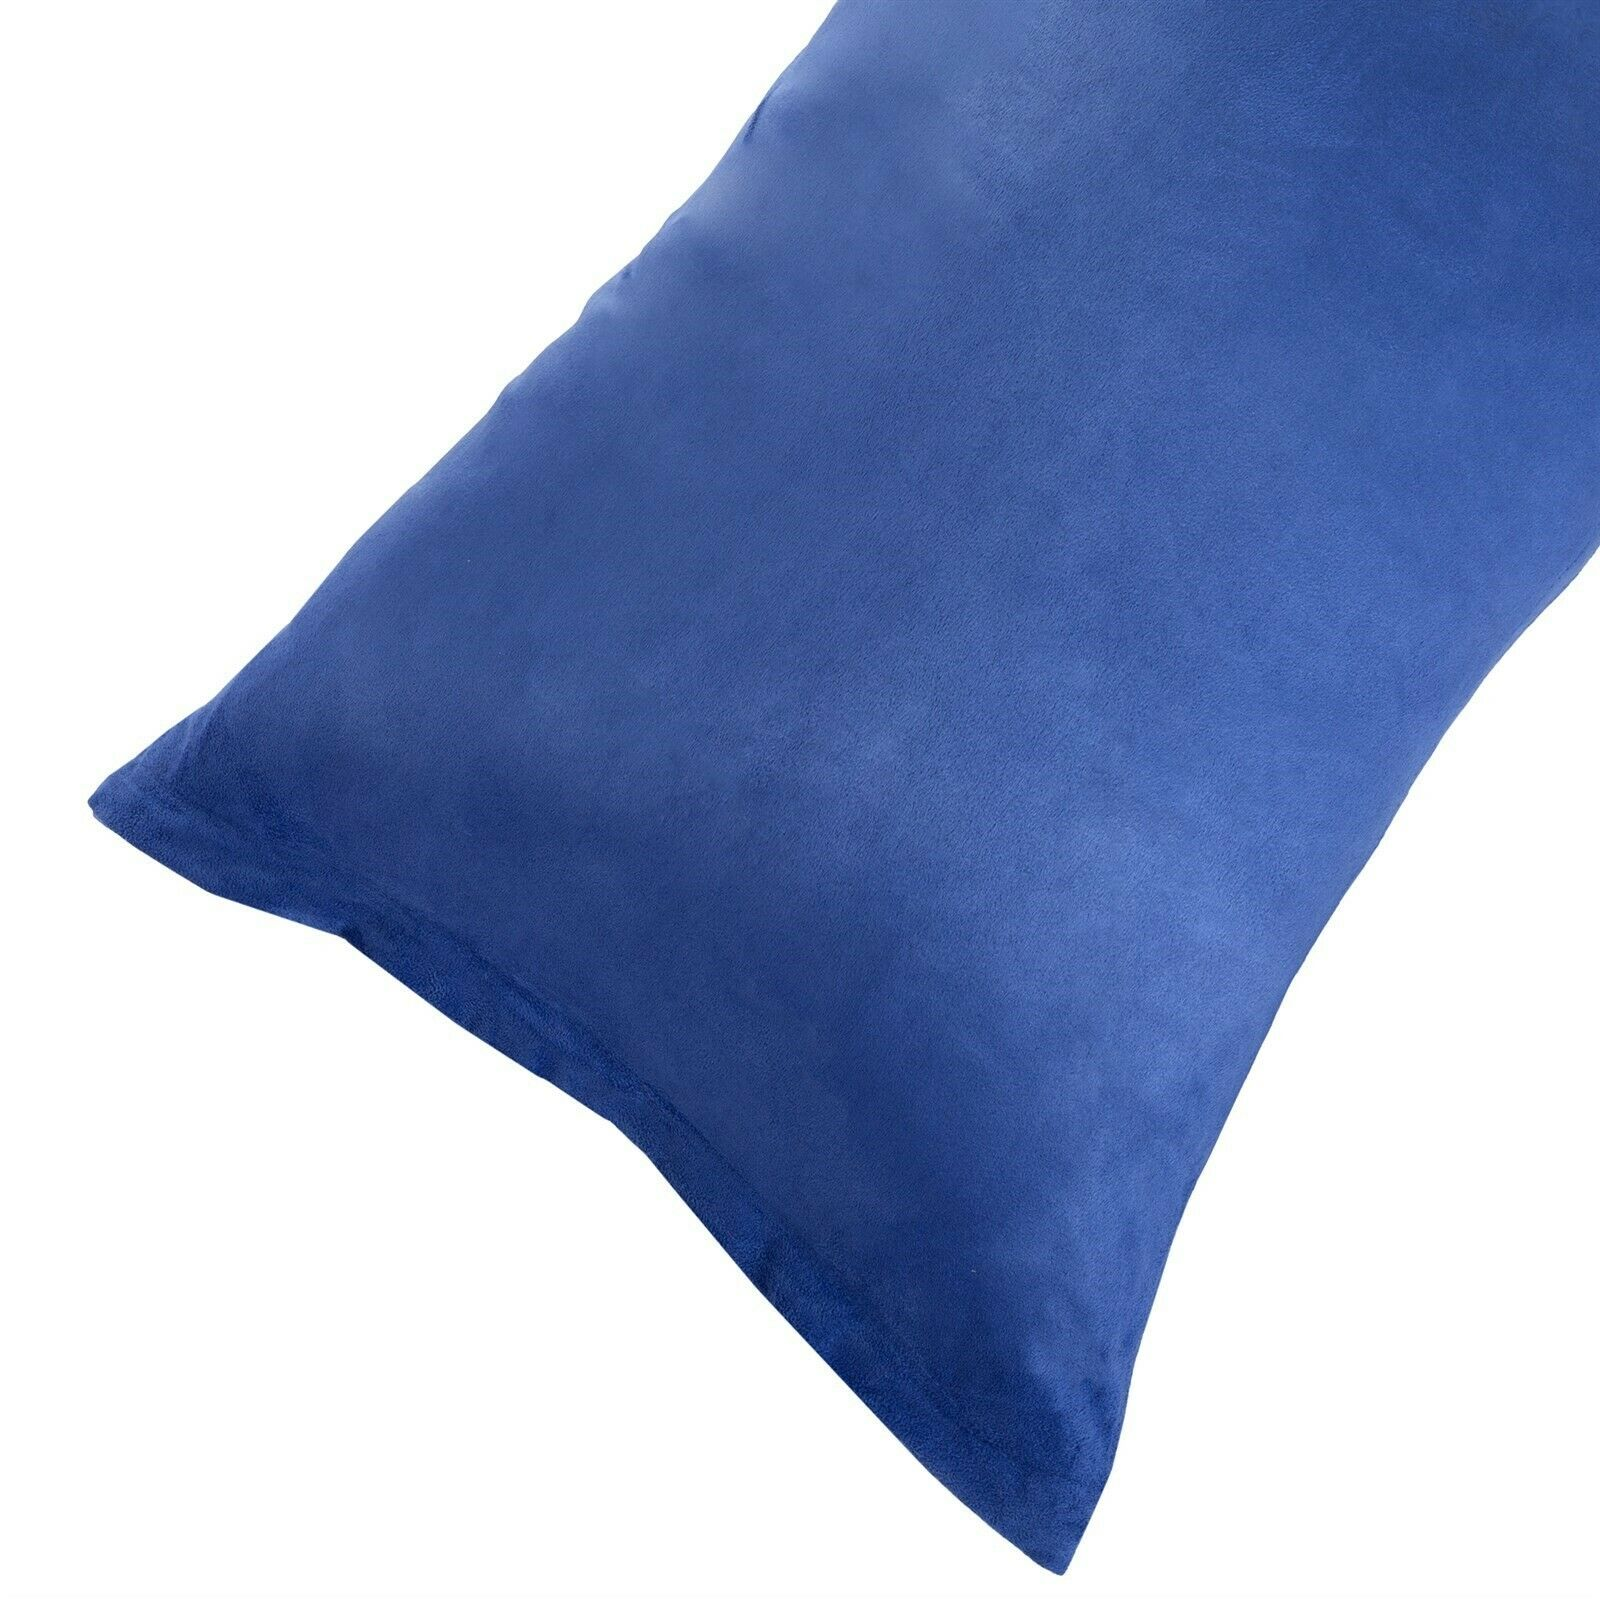 Microsuede Body Pillow Cover Pillowcase Zippered Washable 51